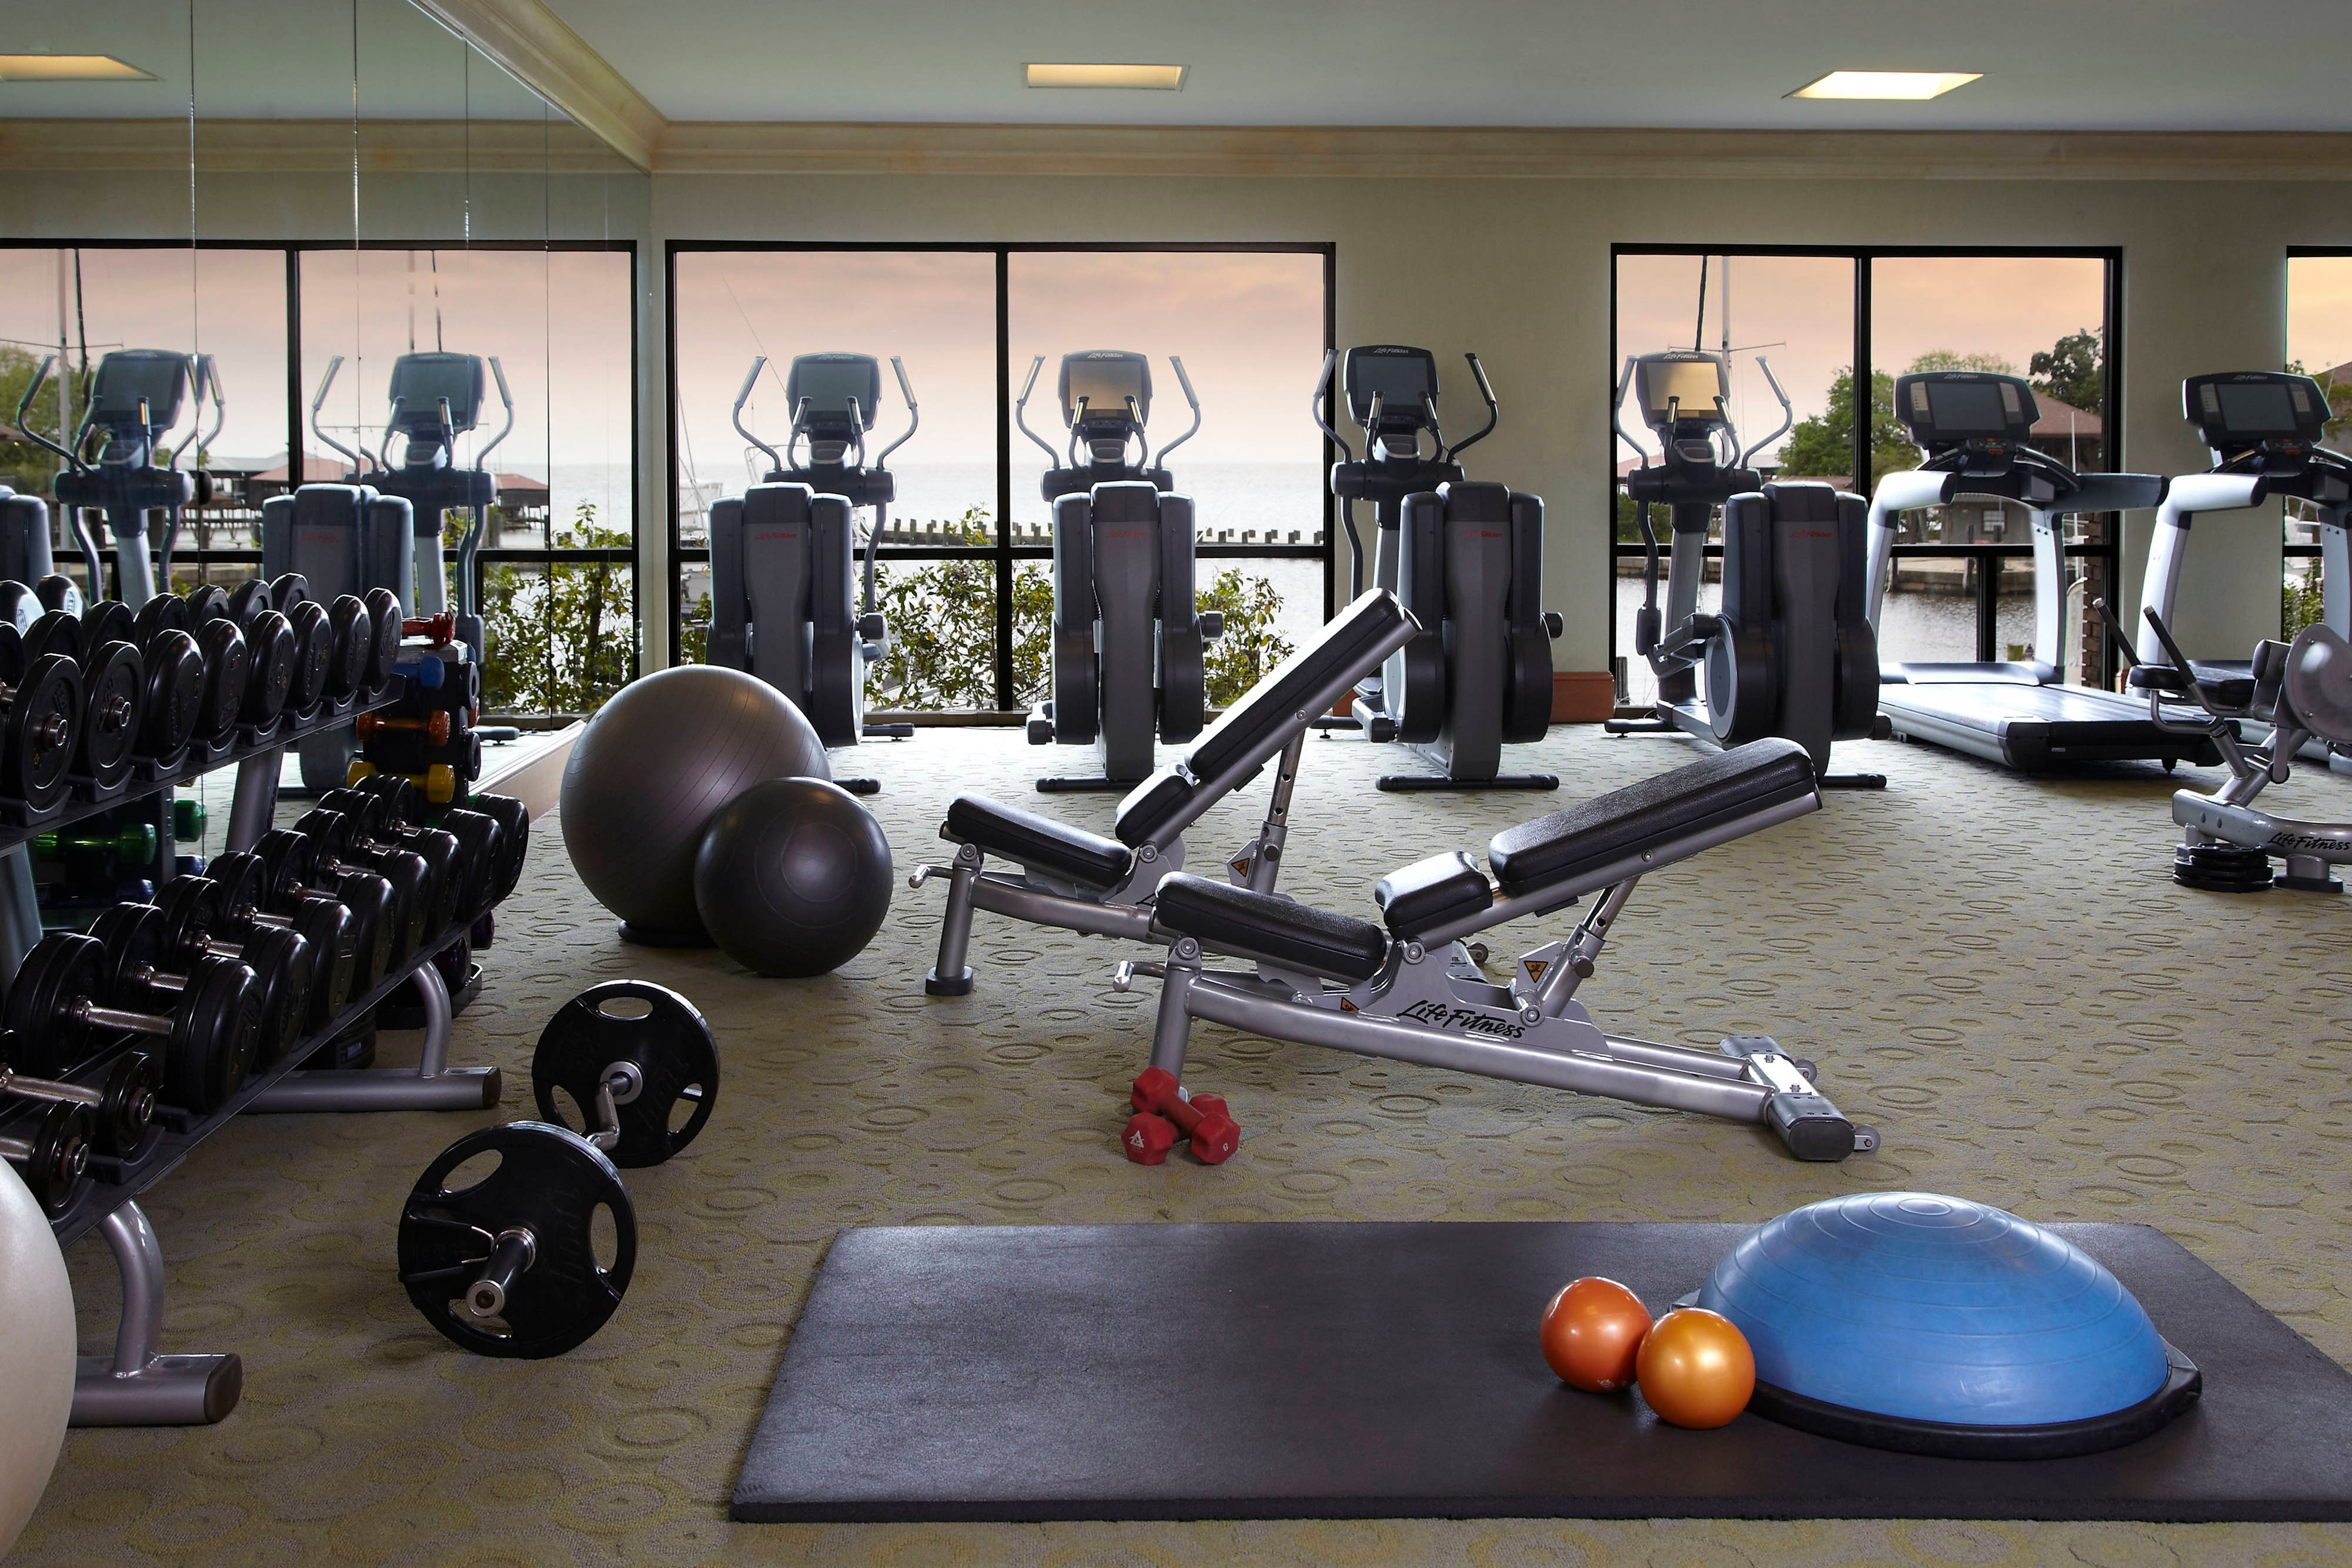 Mobile Bay Hotel Fitness Center